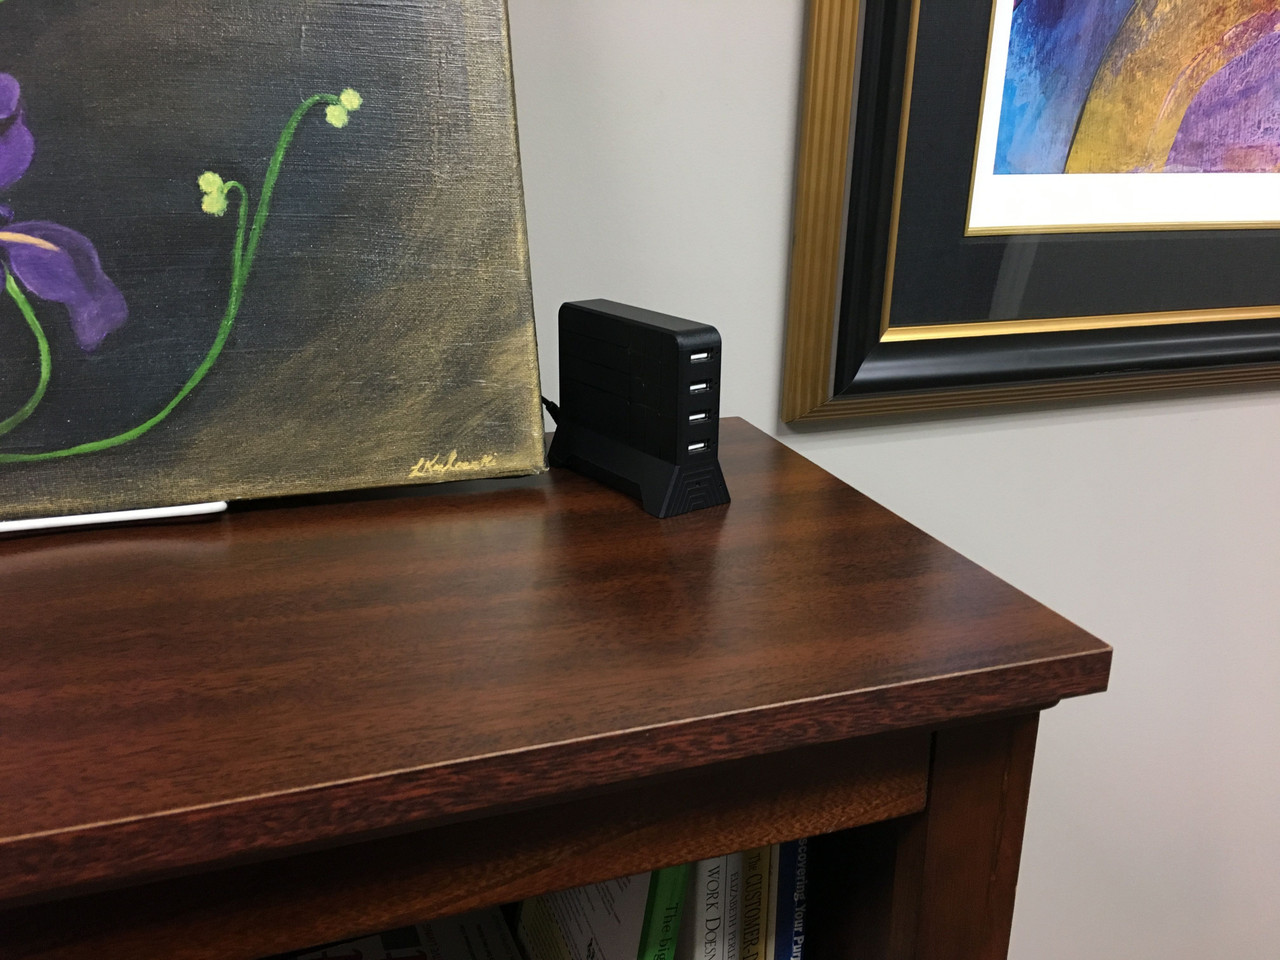 Lawmate PV-CS10i Covert Camera and DVR USB Charging Station On Bookshelf